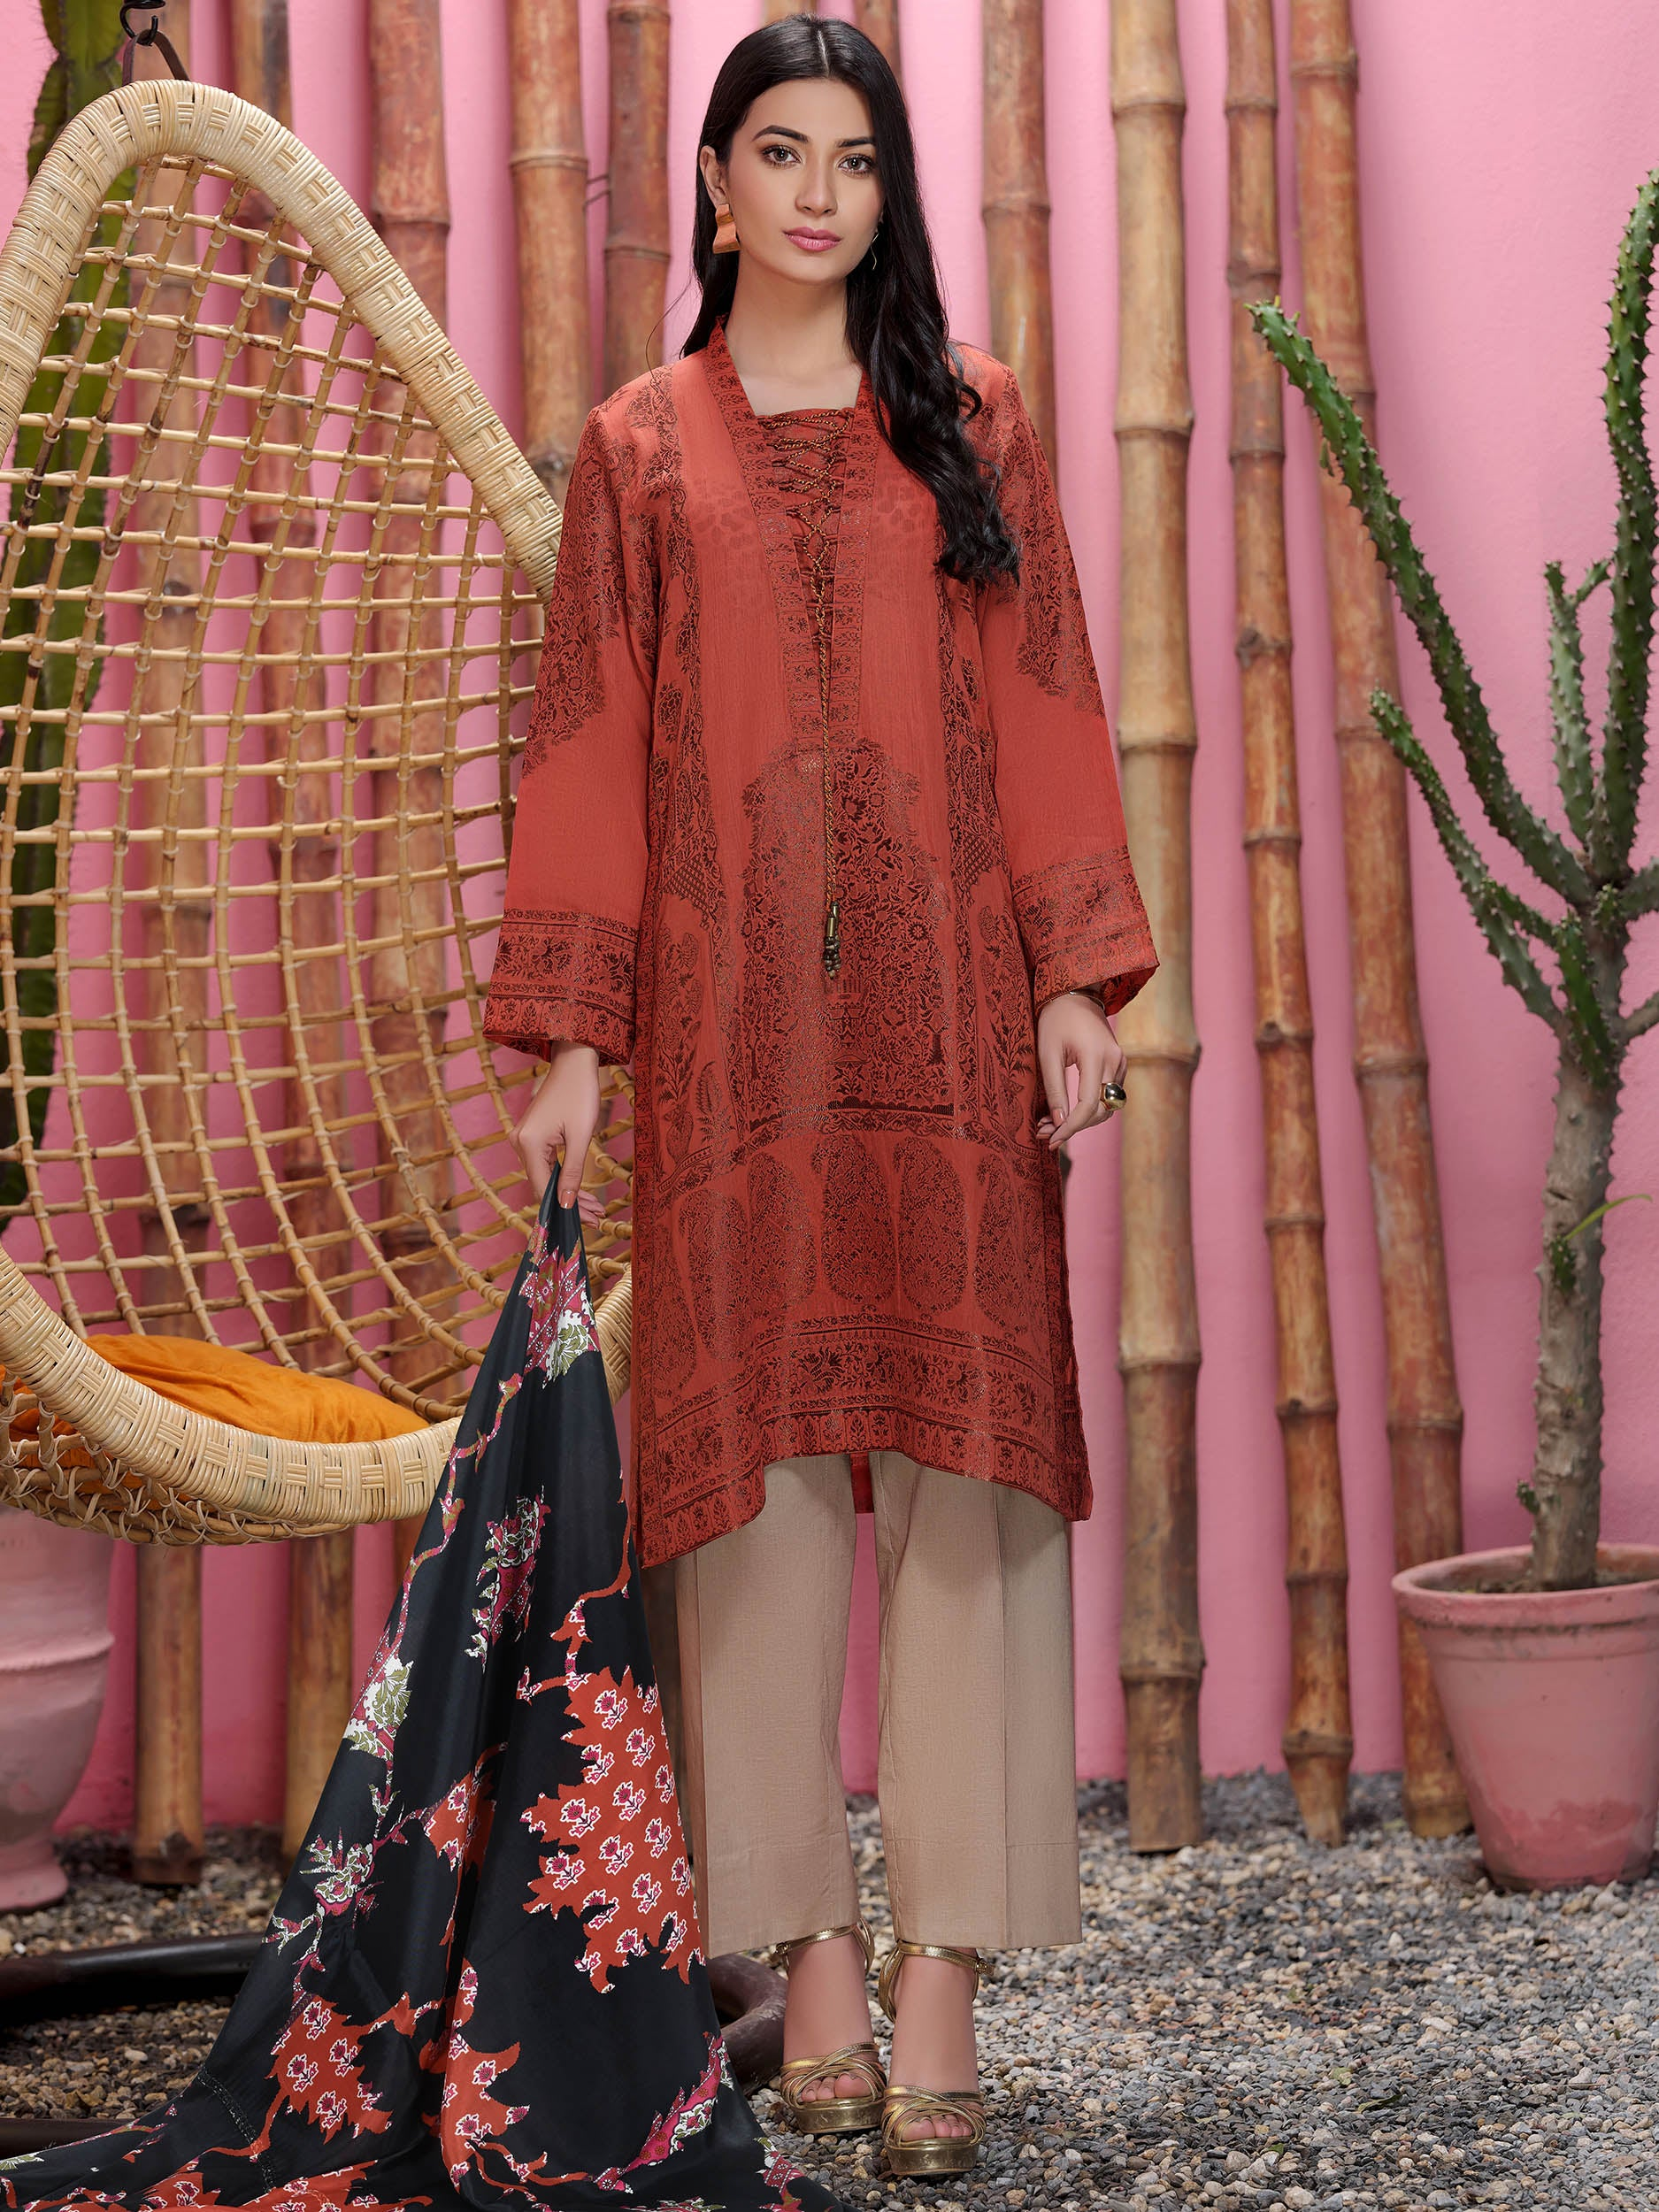 2-Pc Jacquard Suit